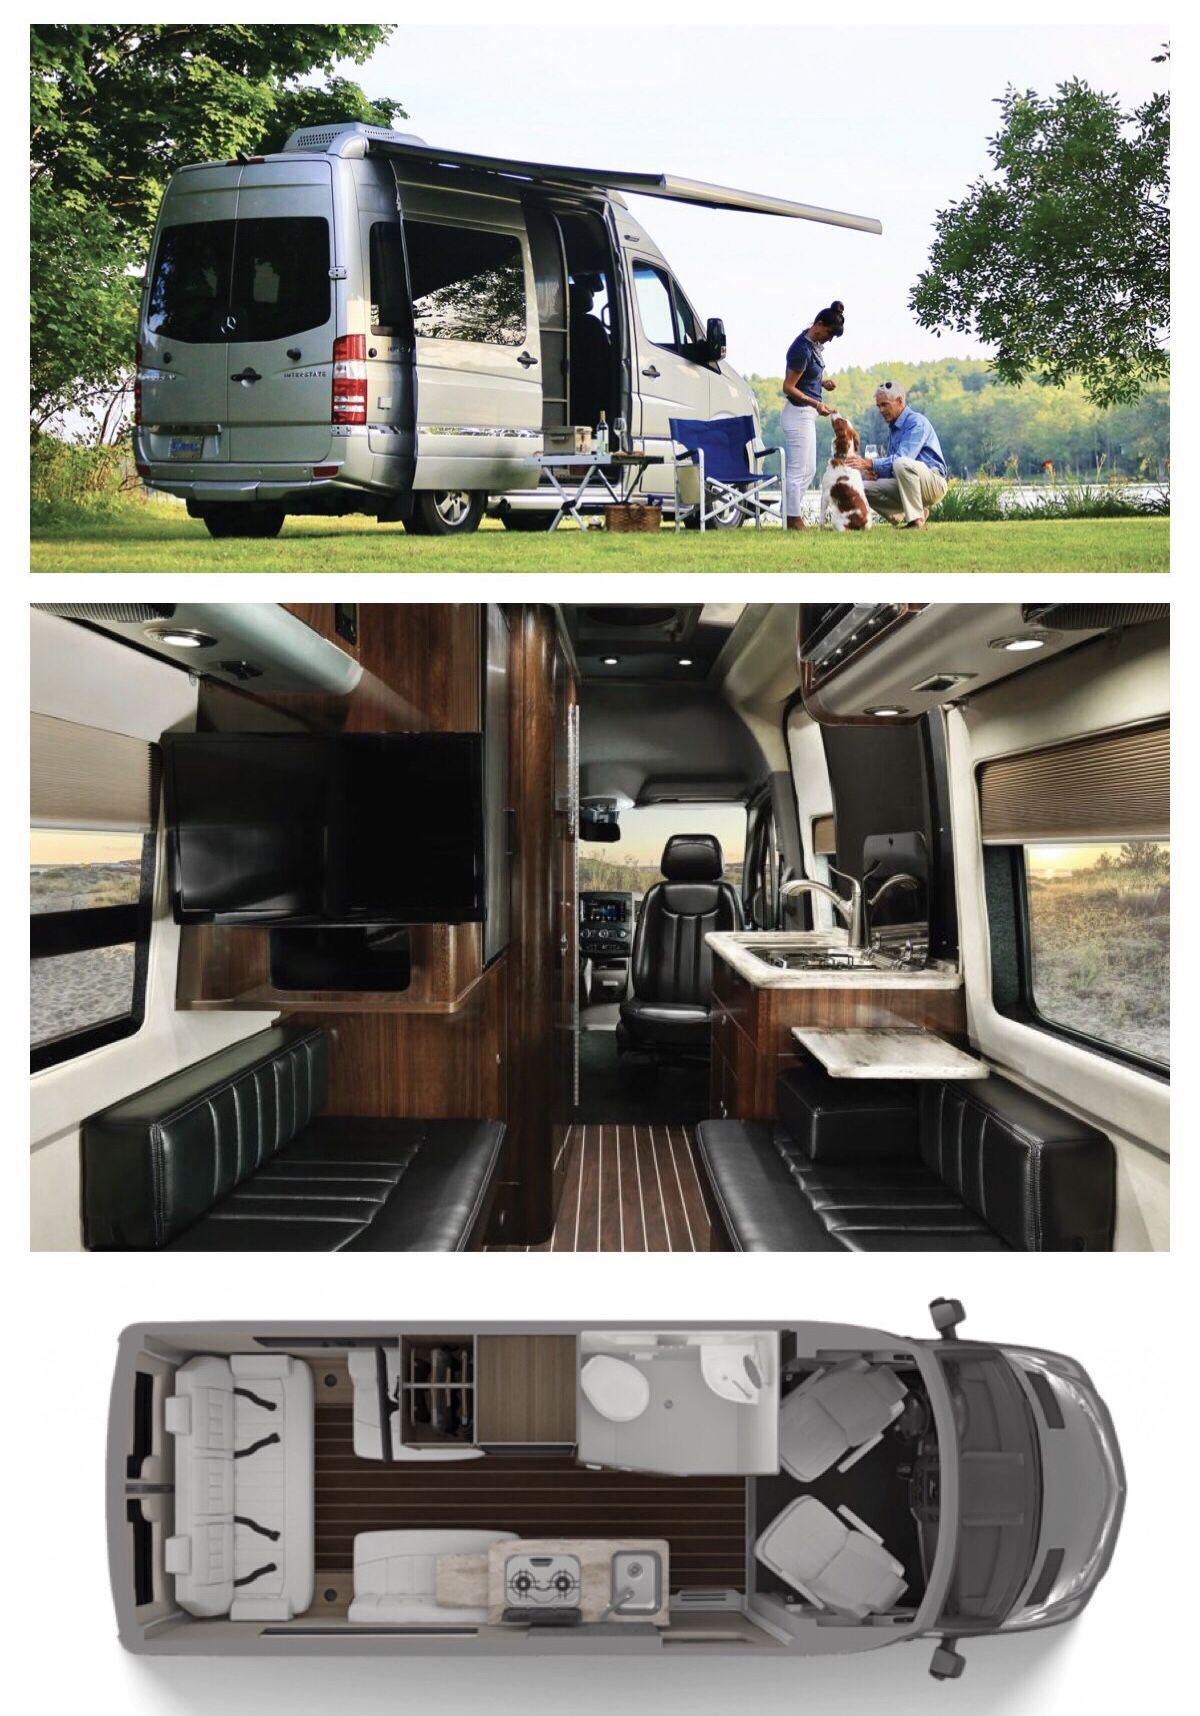 Pin By Evelynda Dahling On Future Luxury Tours Class B Camper